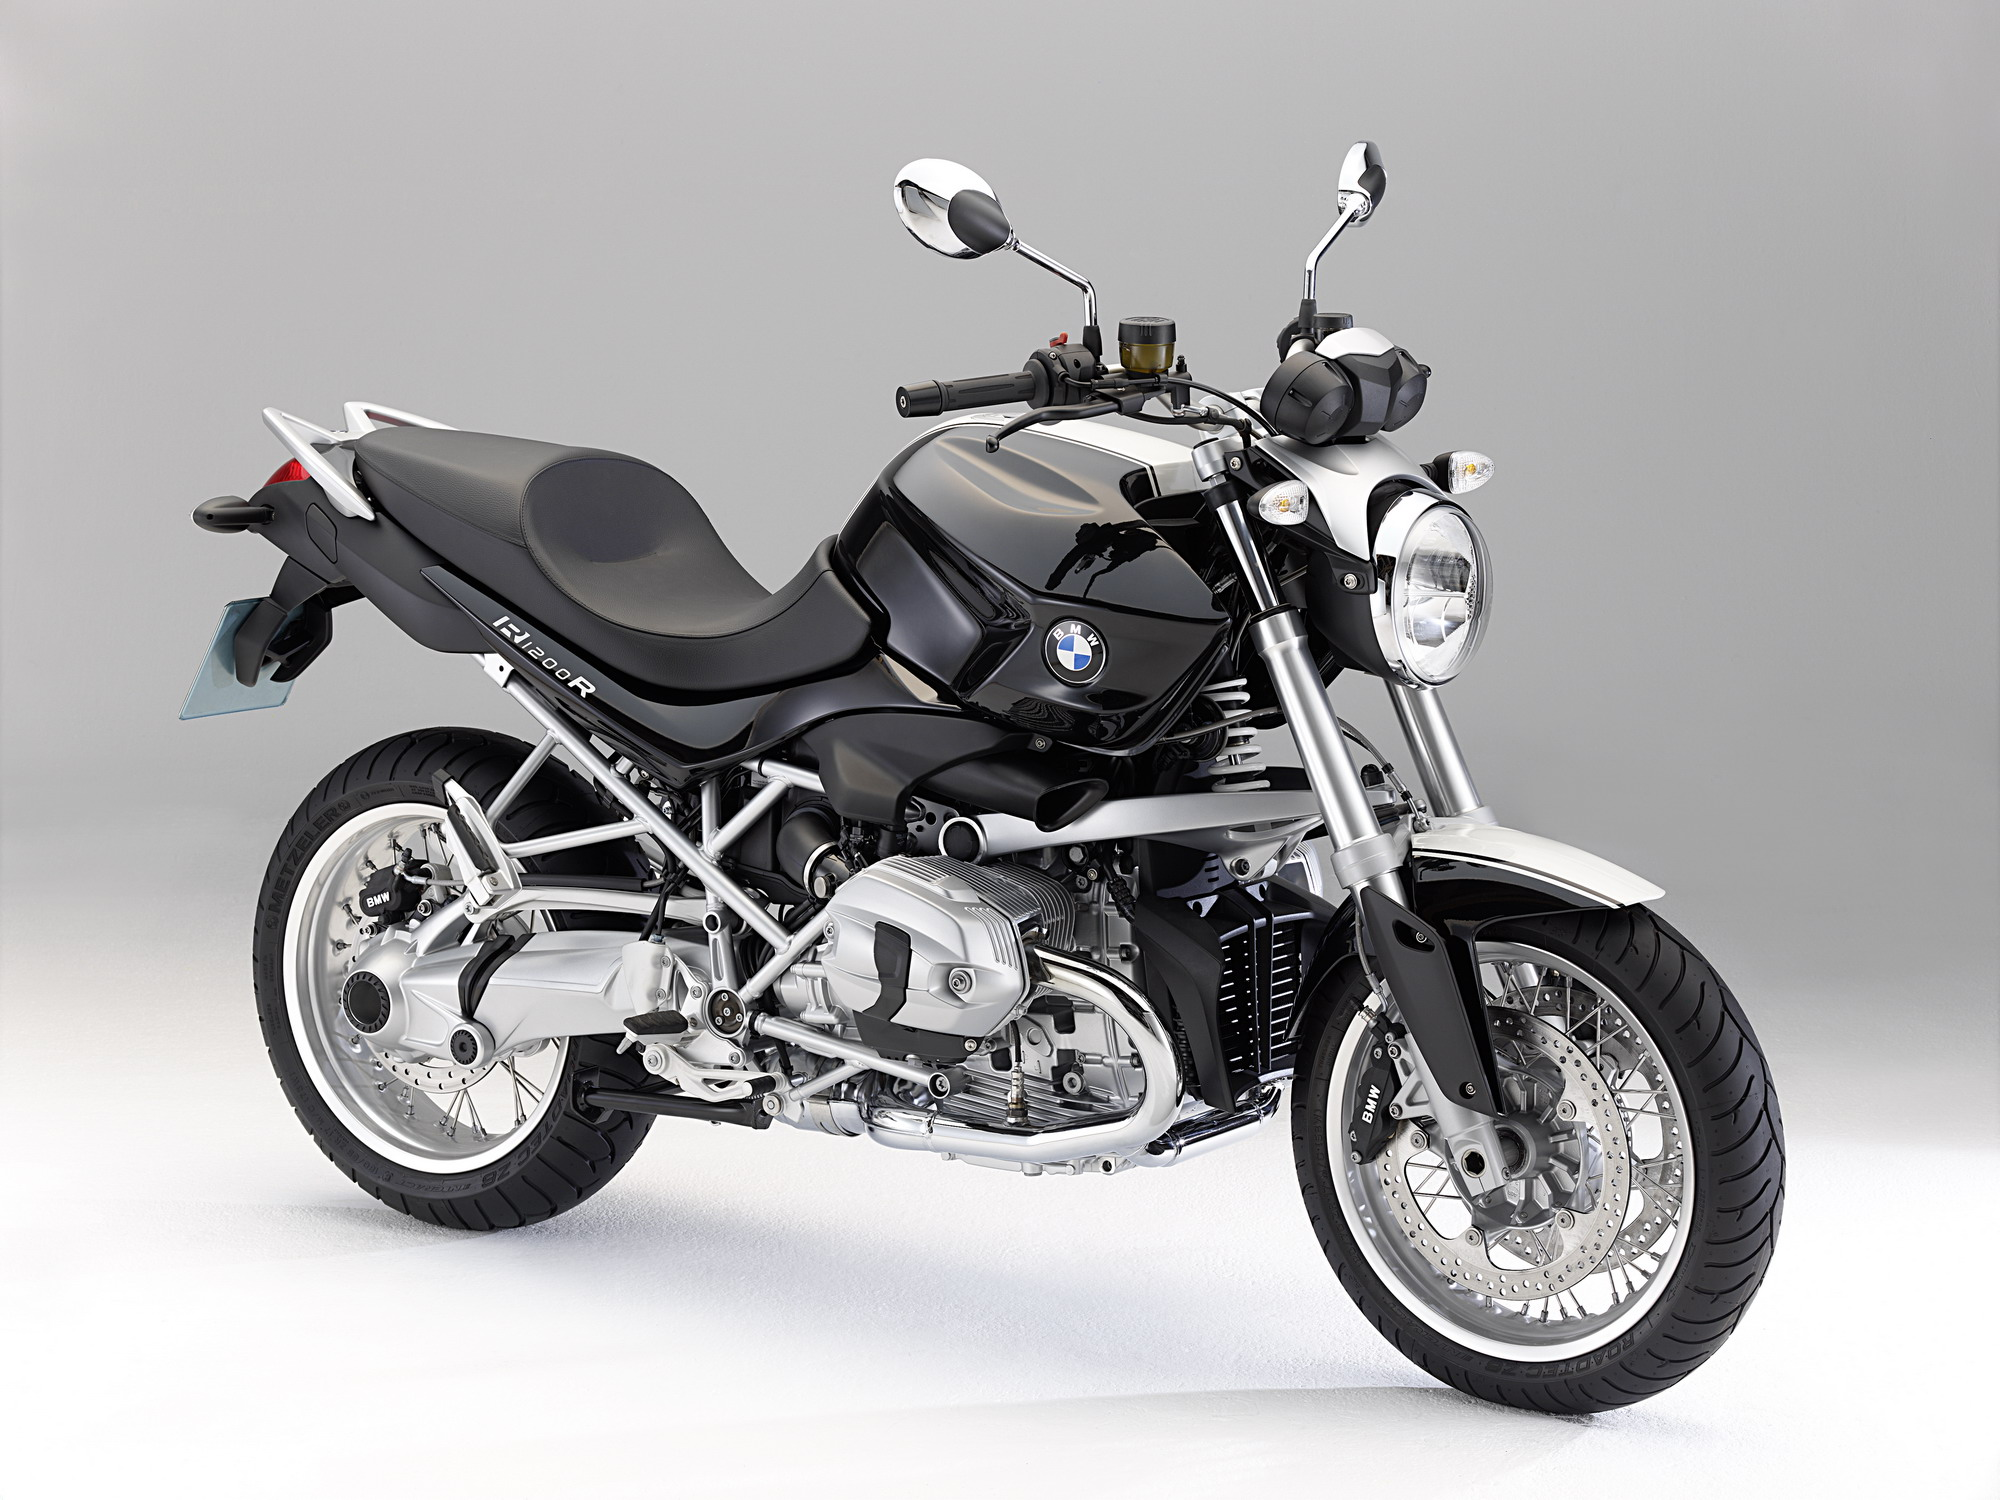 2011 bmw r 1200 r and r 1200 r classic top speed. Black Bedroom Furniture Sets. Home Design Ideas